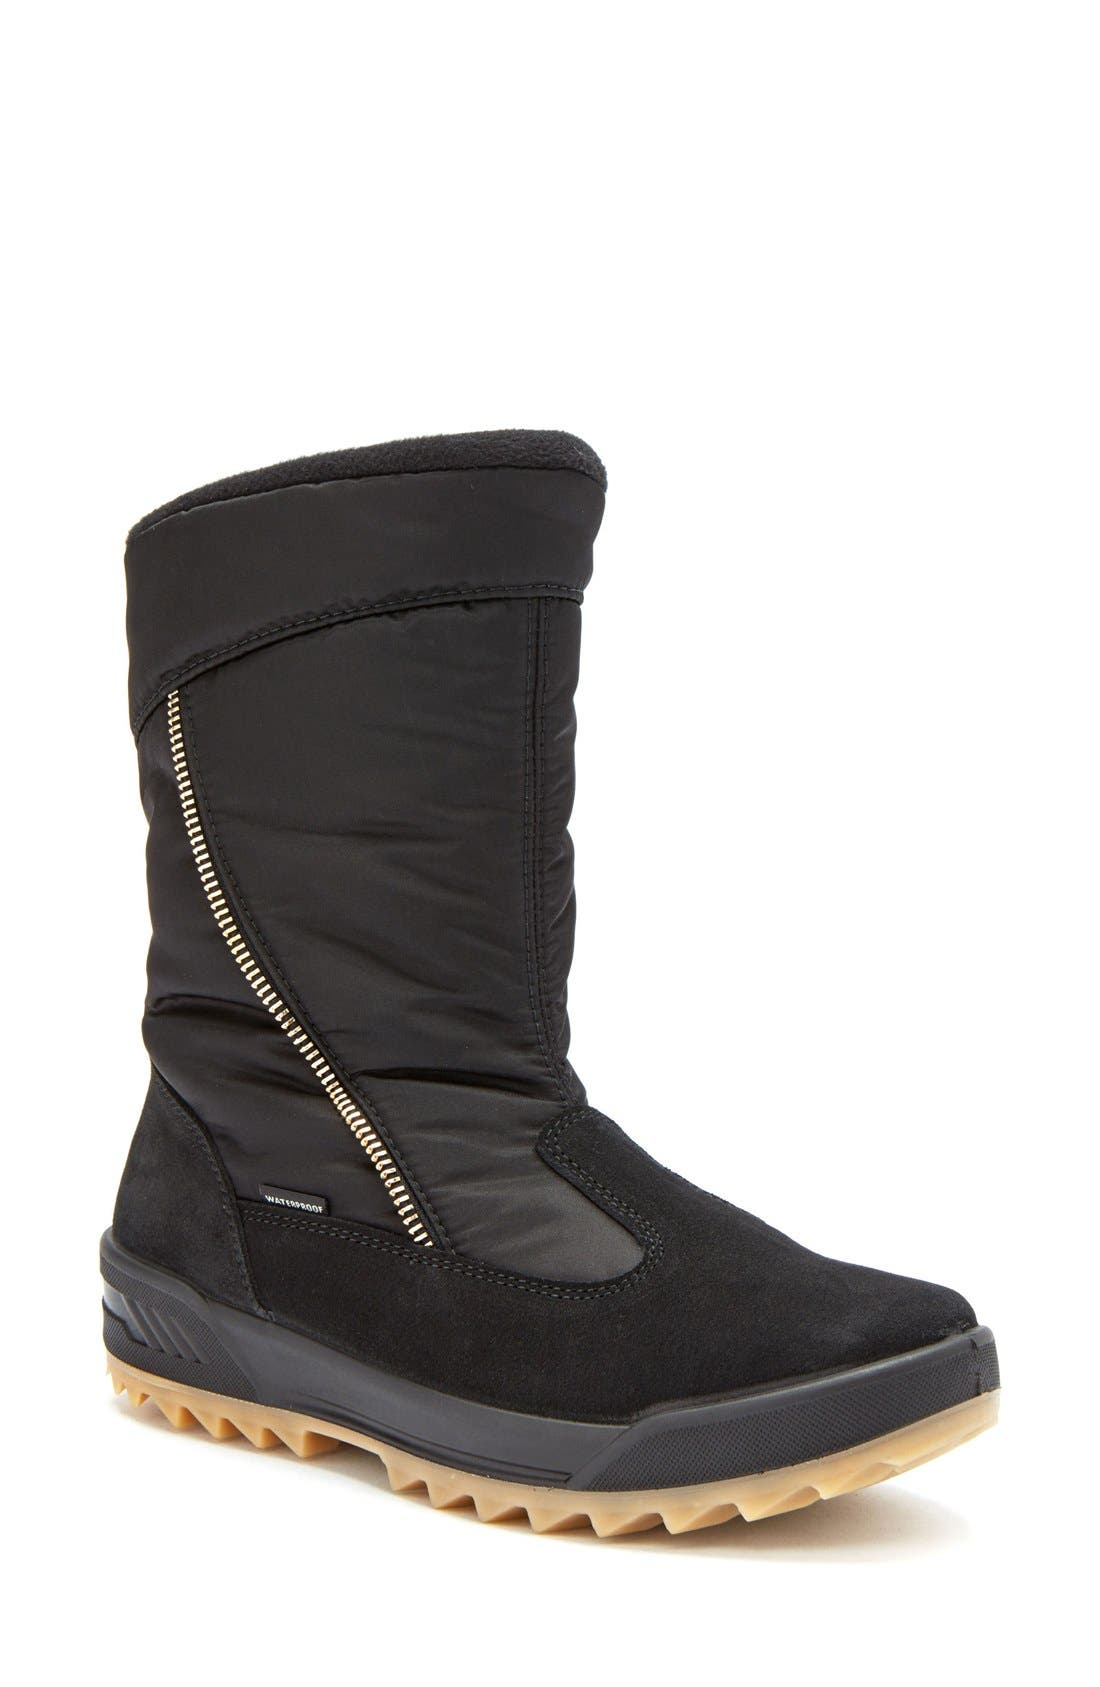 Blondo Iceland Waterproof Snow Boot (Women)